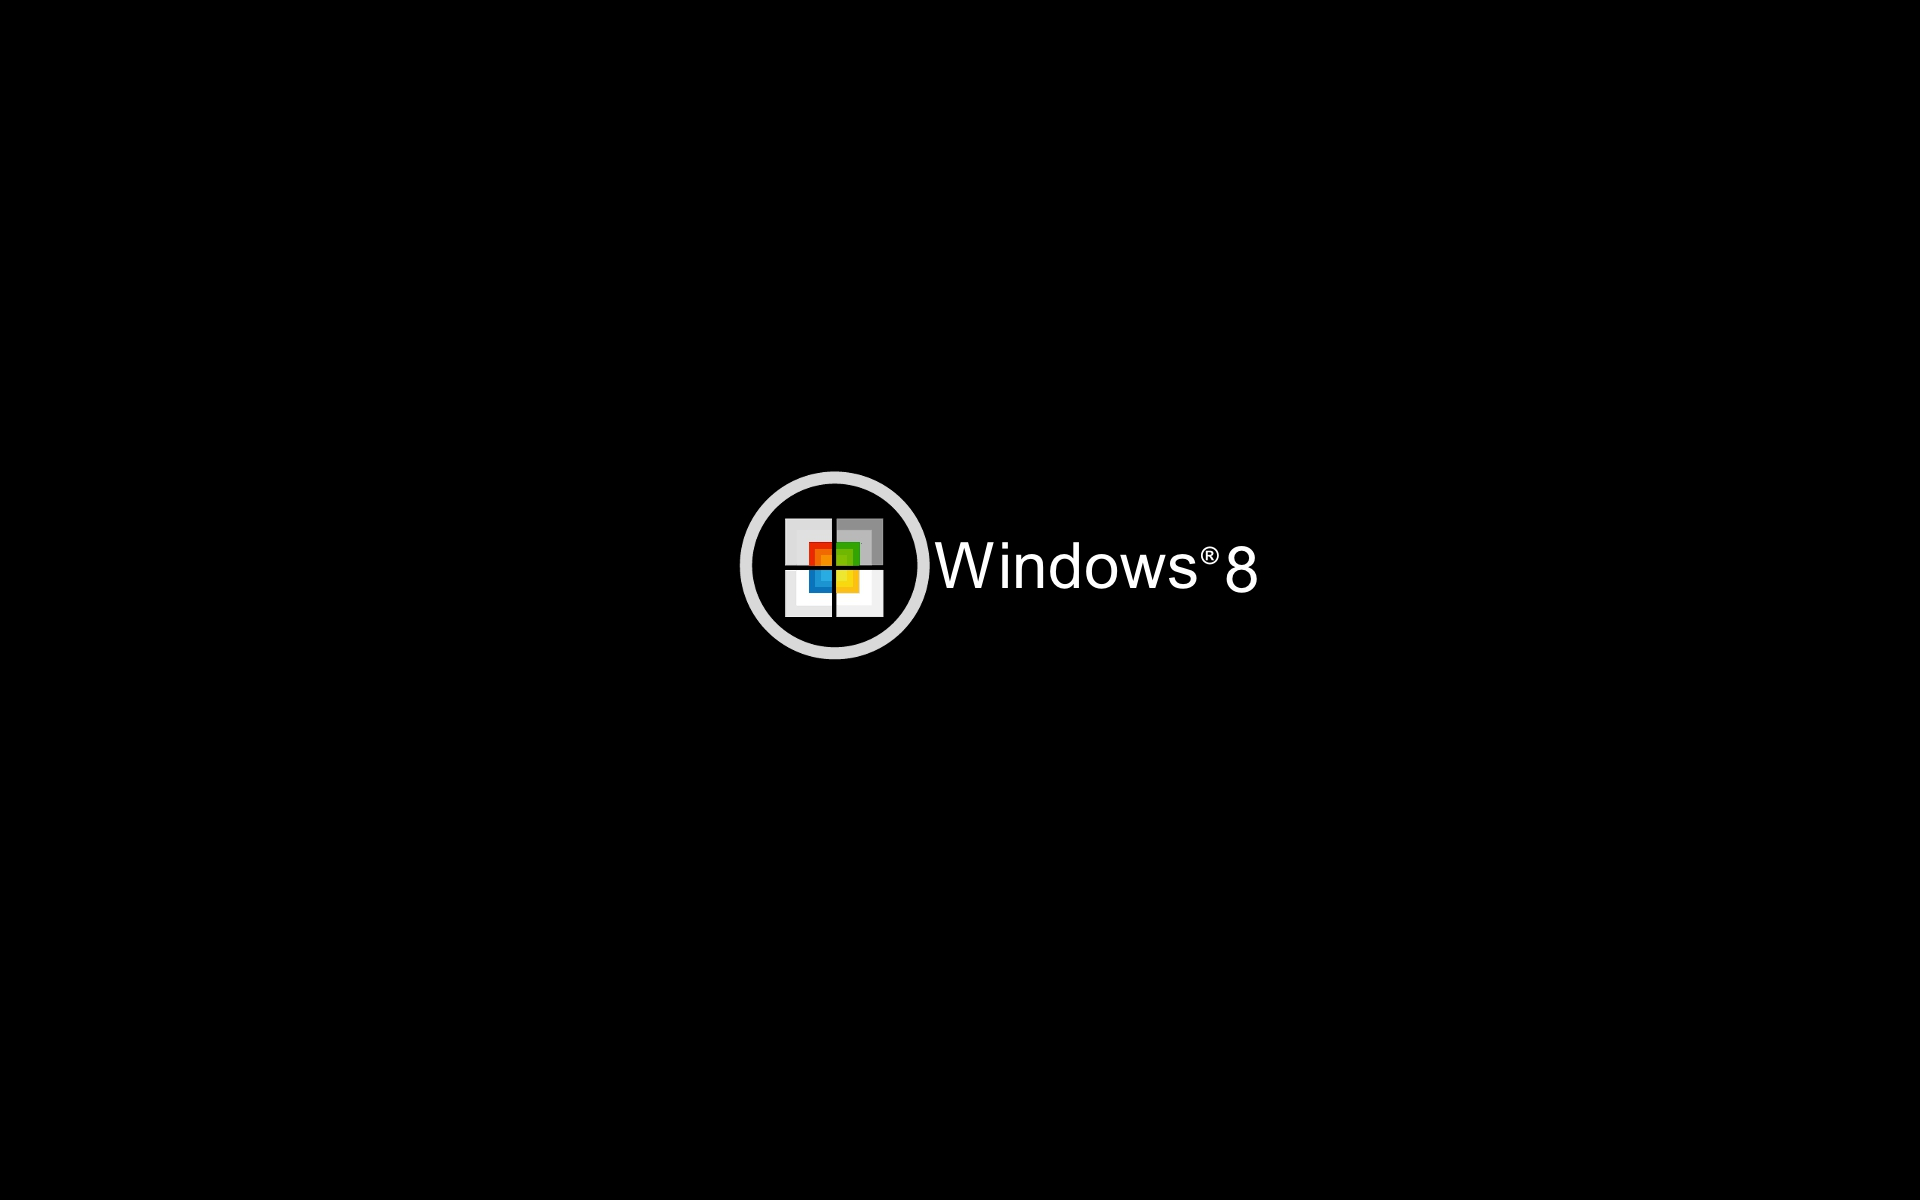 1920x1200 Windows 8 black, 1920 × 1200 in Wallpapers